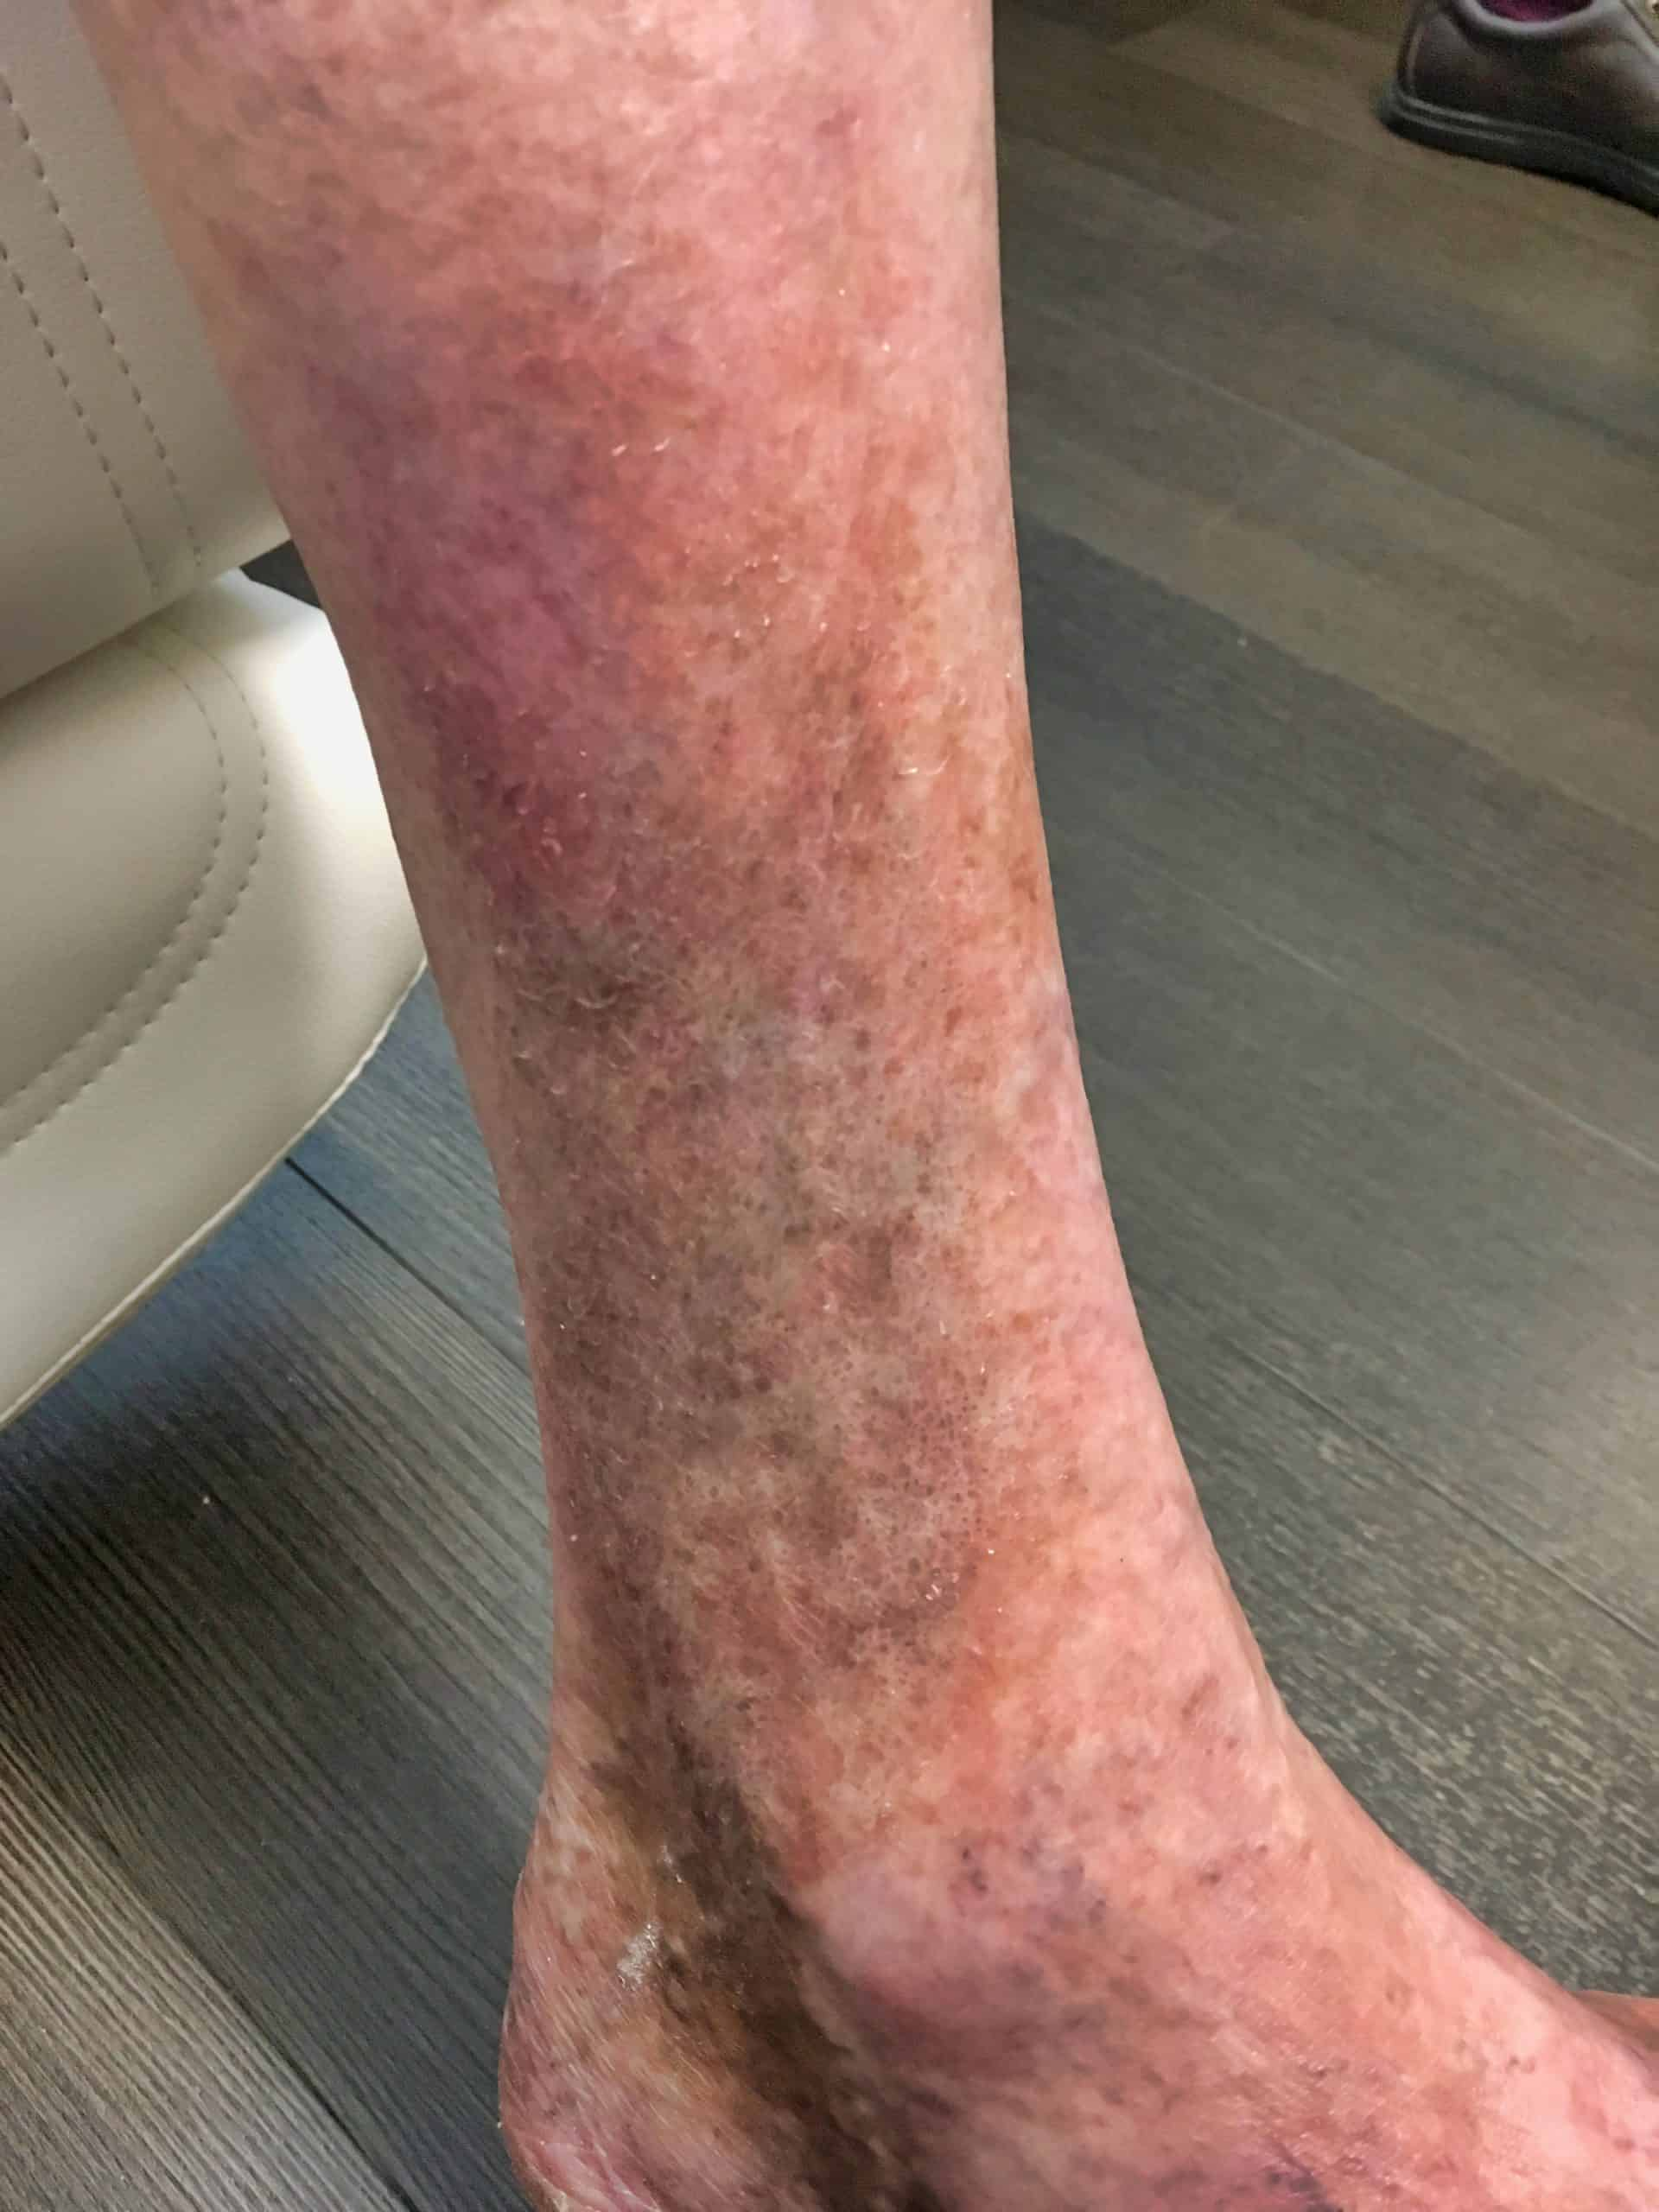 Leg ulcer and discoloration 5 months after treatment